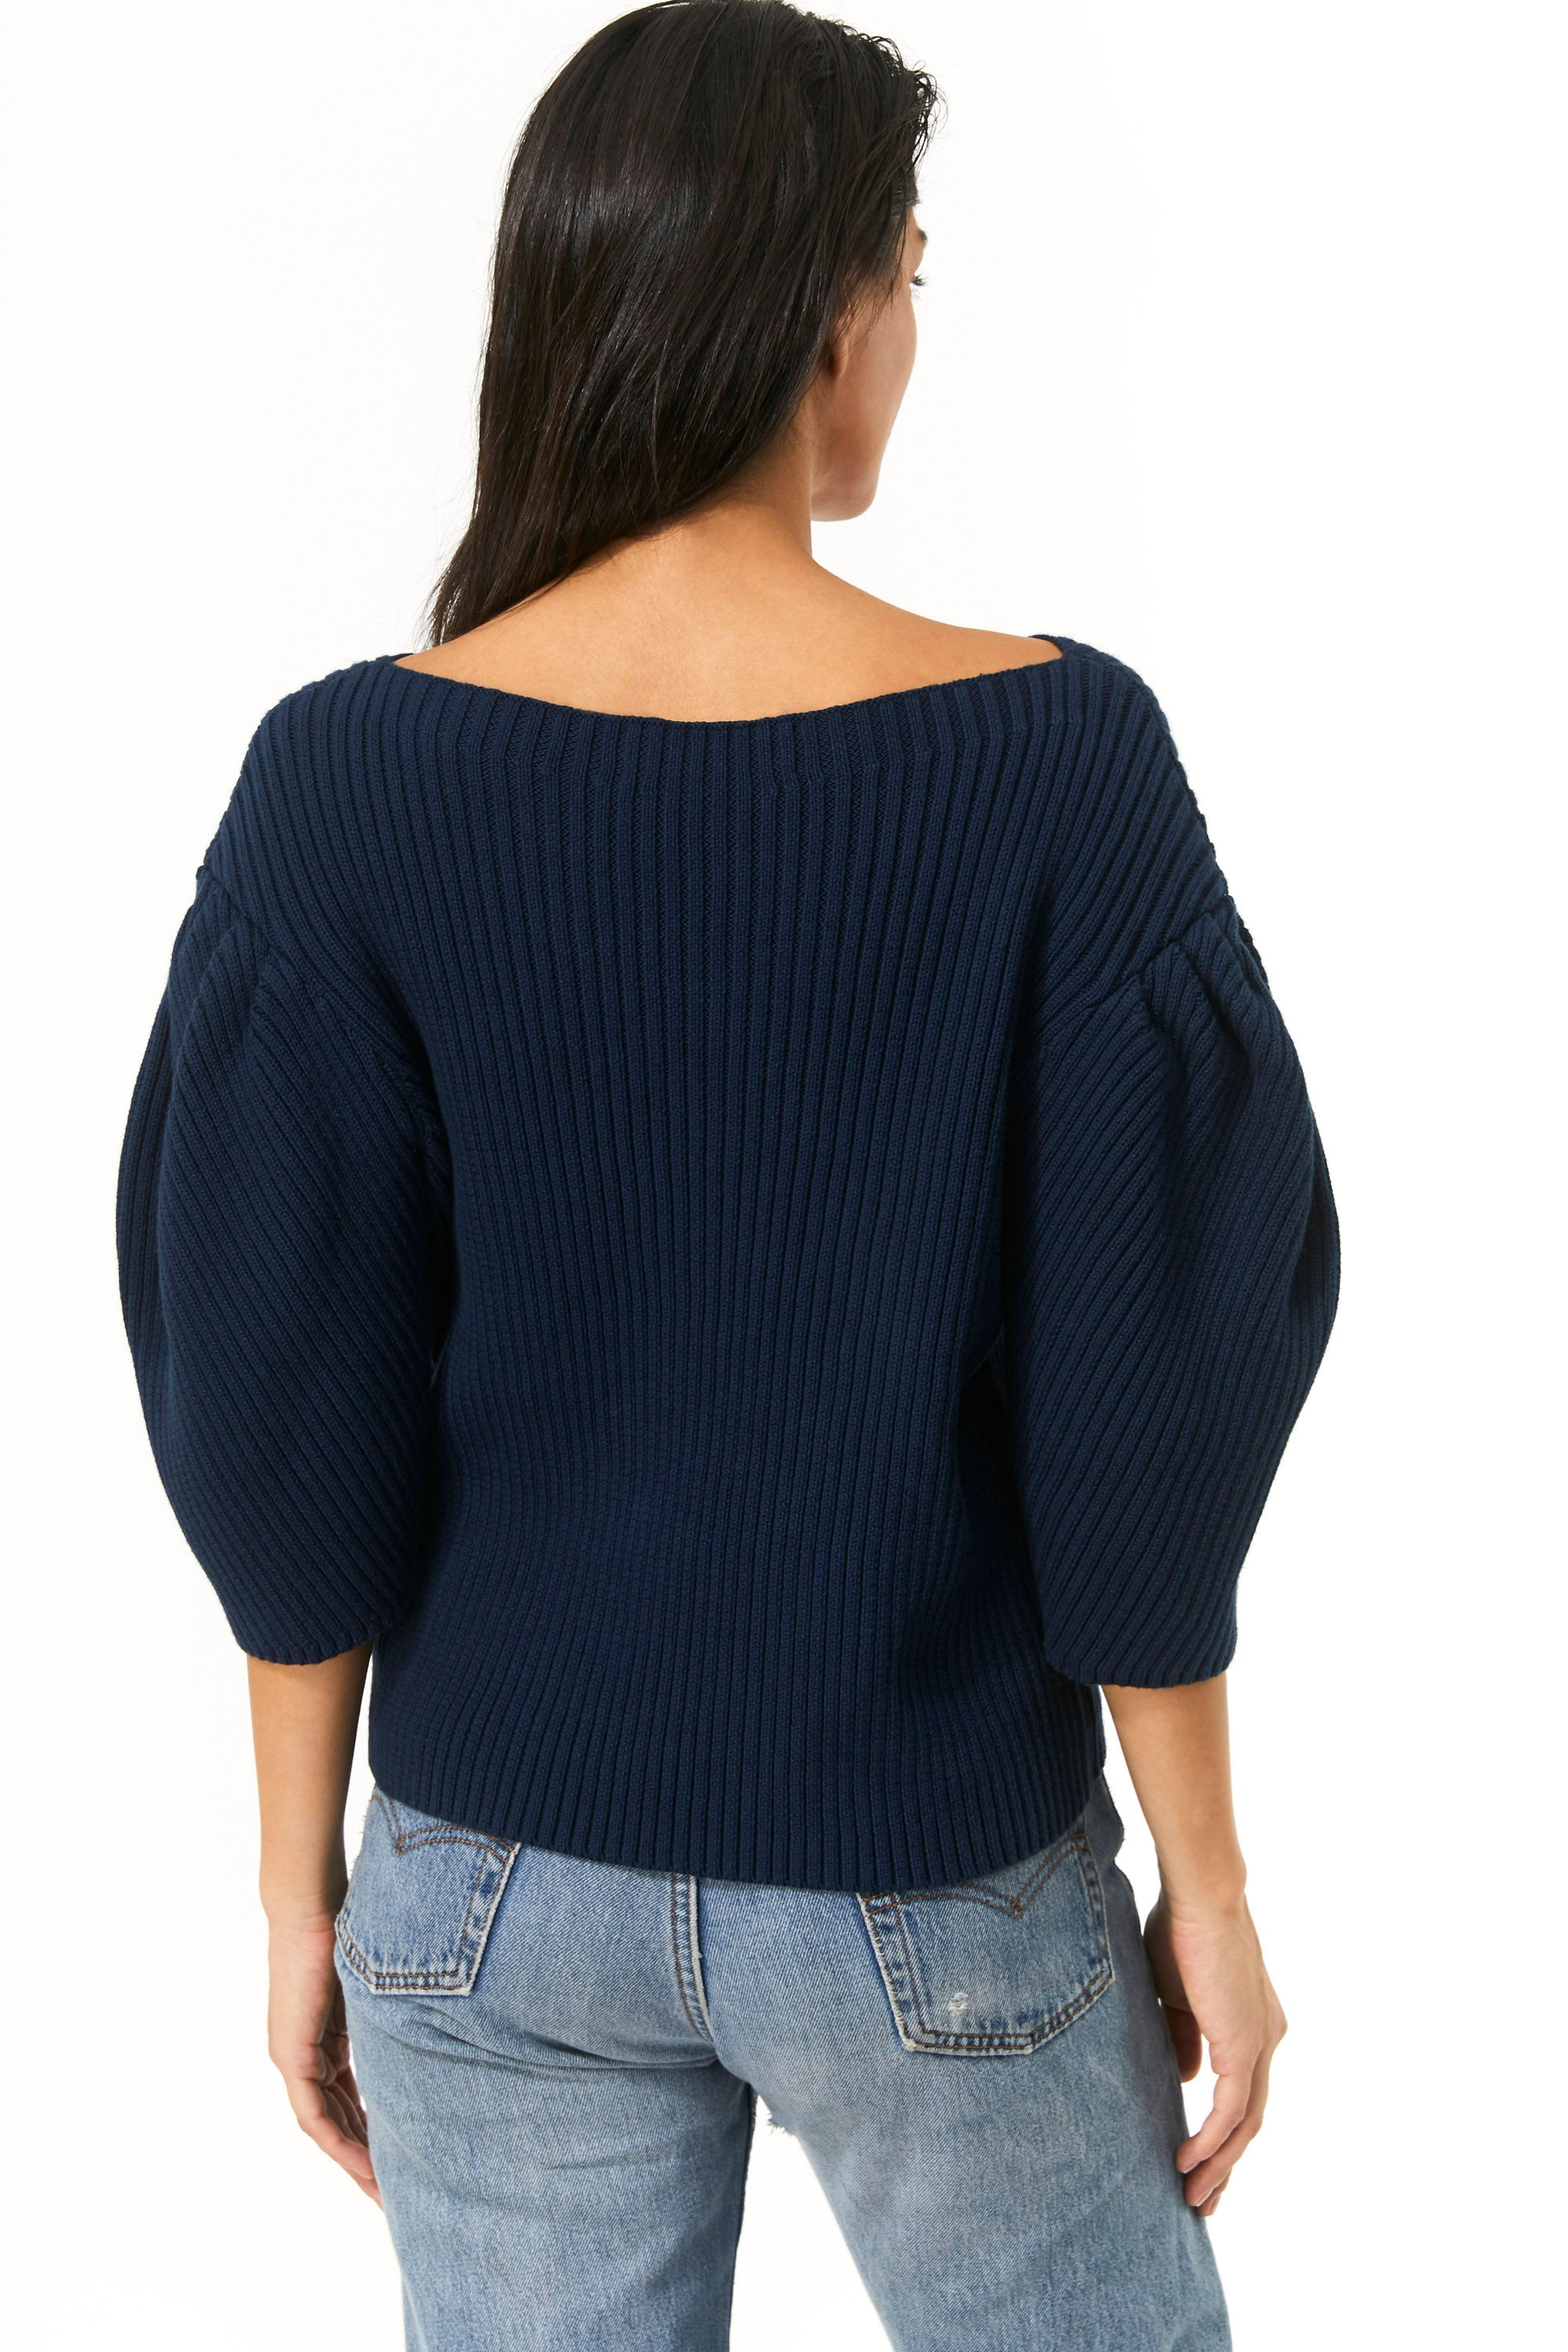 Mara Hoffman Indigo Inga Sweater in organic cotton (back)